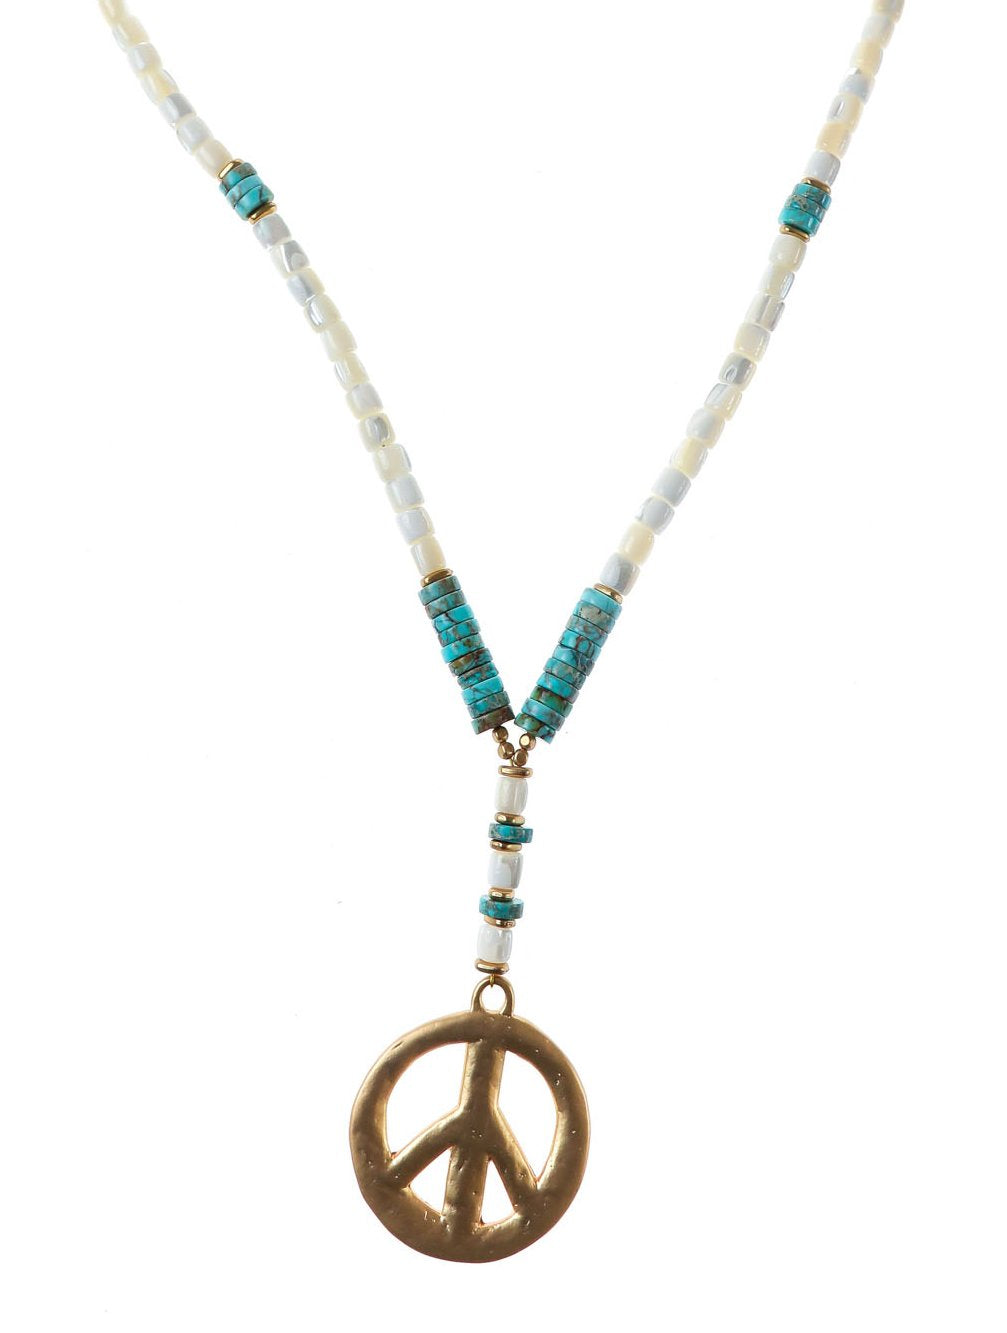 TAHITI CREAM PEACE NECKLACE - Kaia London